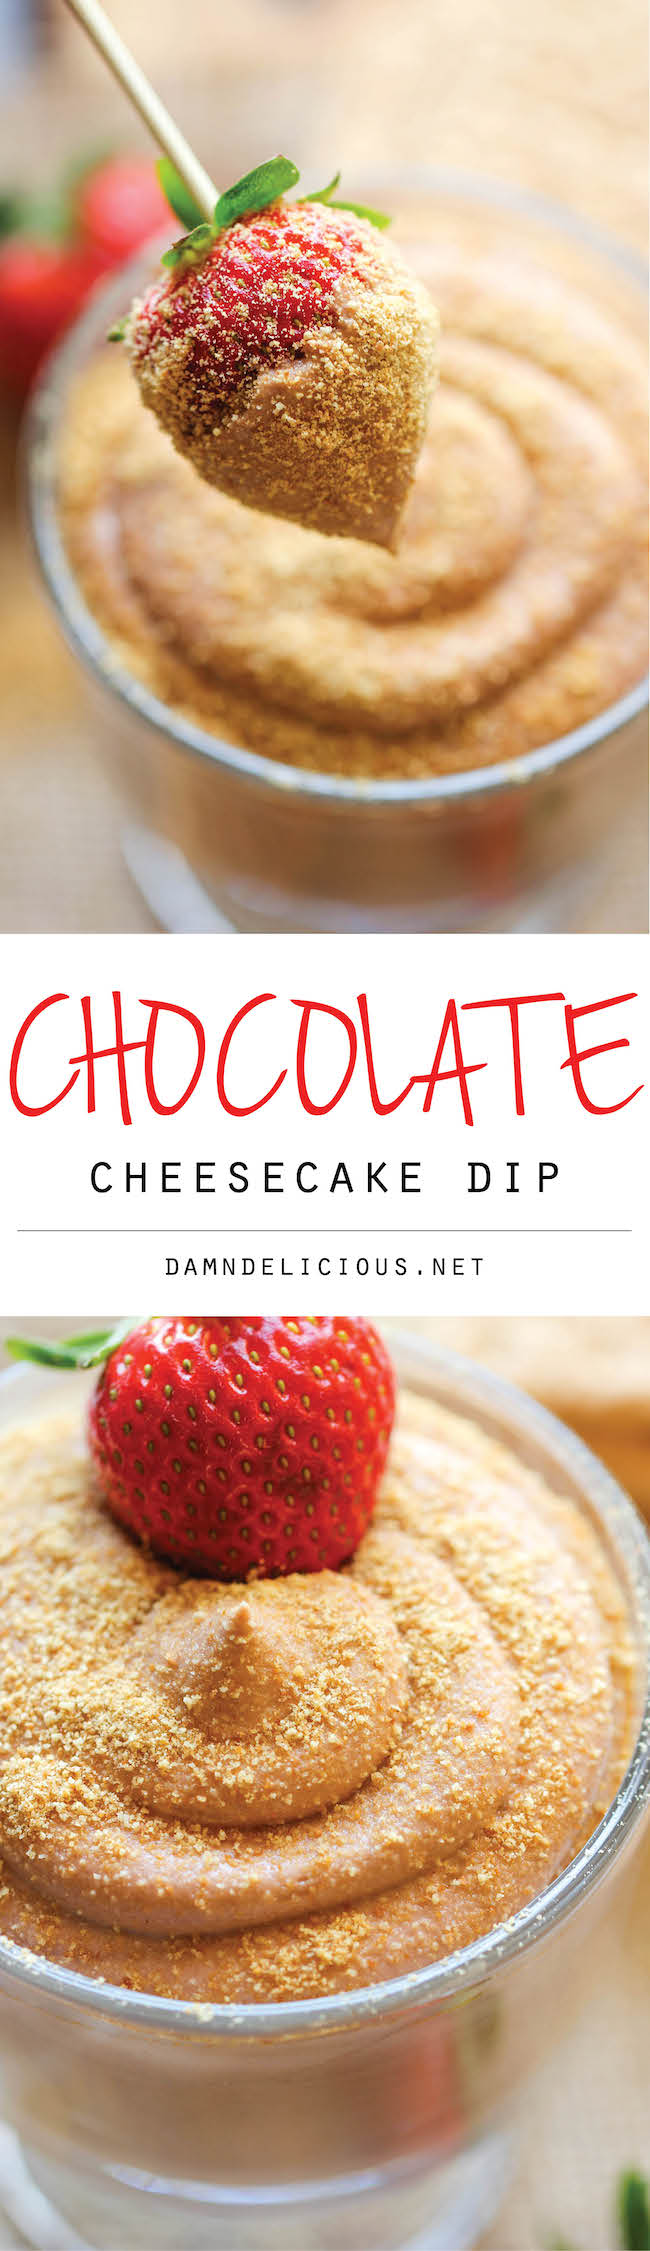 Chocolate Cheesecake Dip - This dip is unbelievably delicious, creamy, easy to make, and always a crowd pleaser!